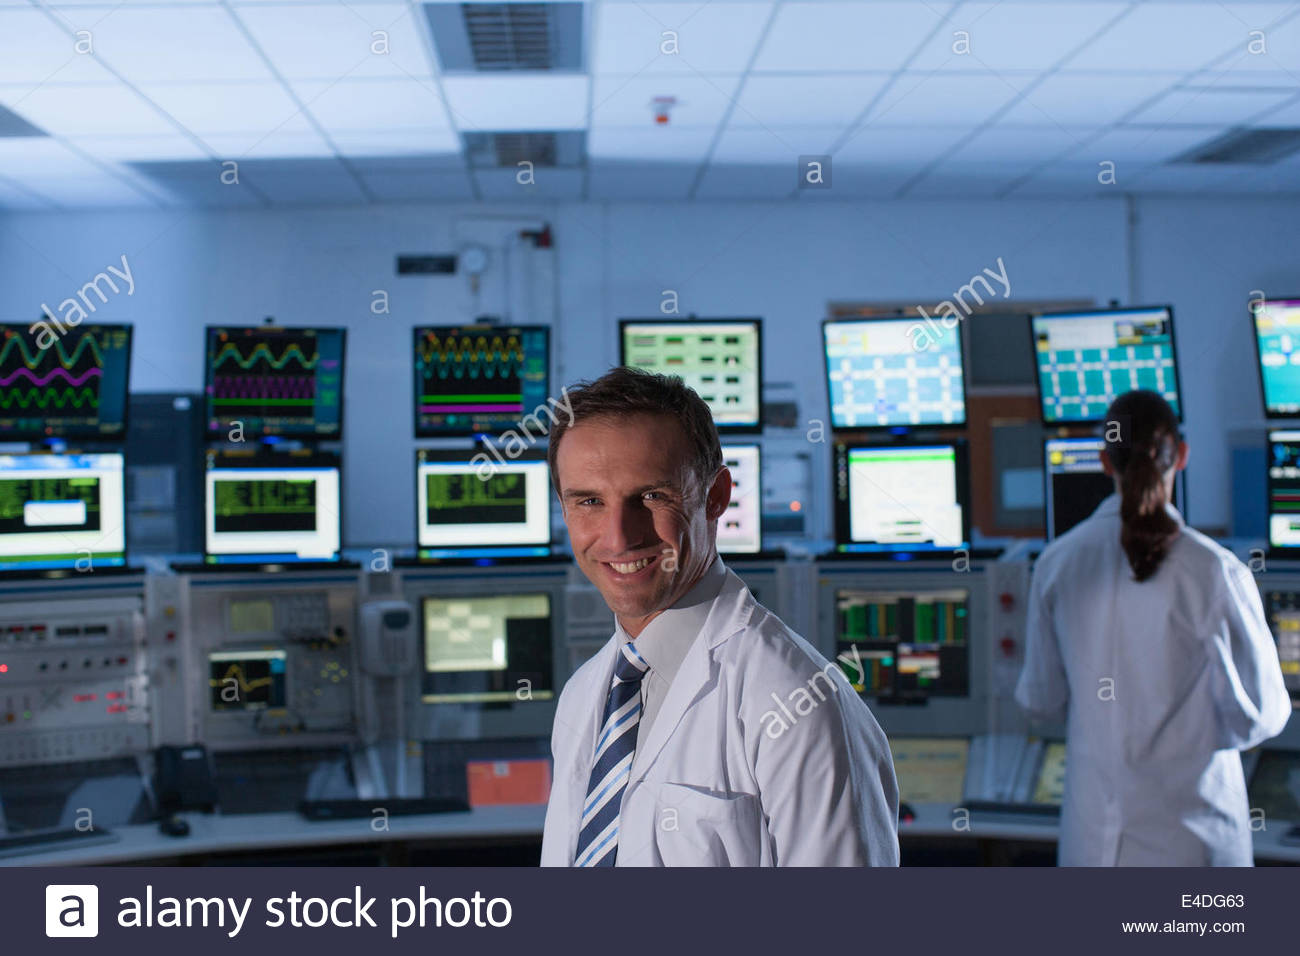 Scientists monitoring computers in control room - Stock Image